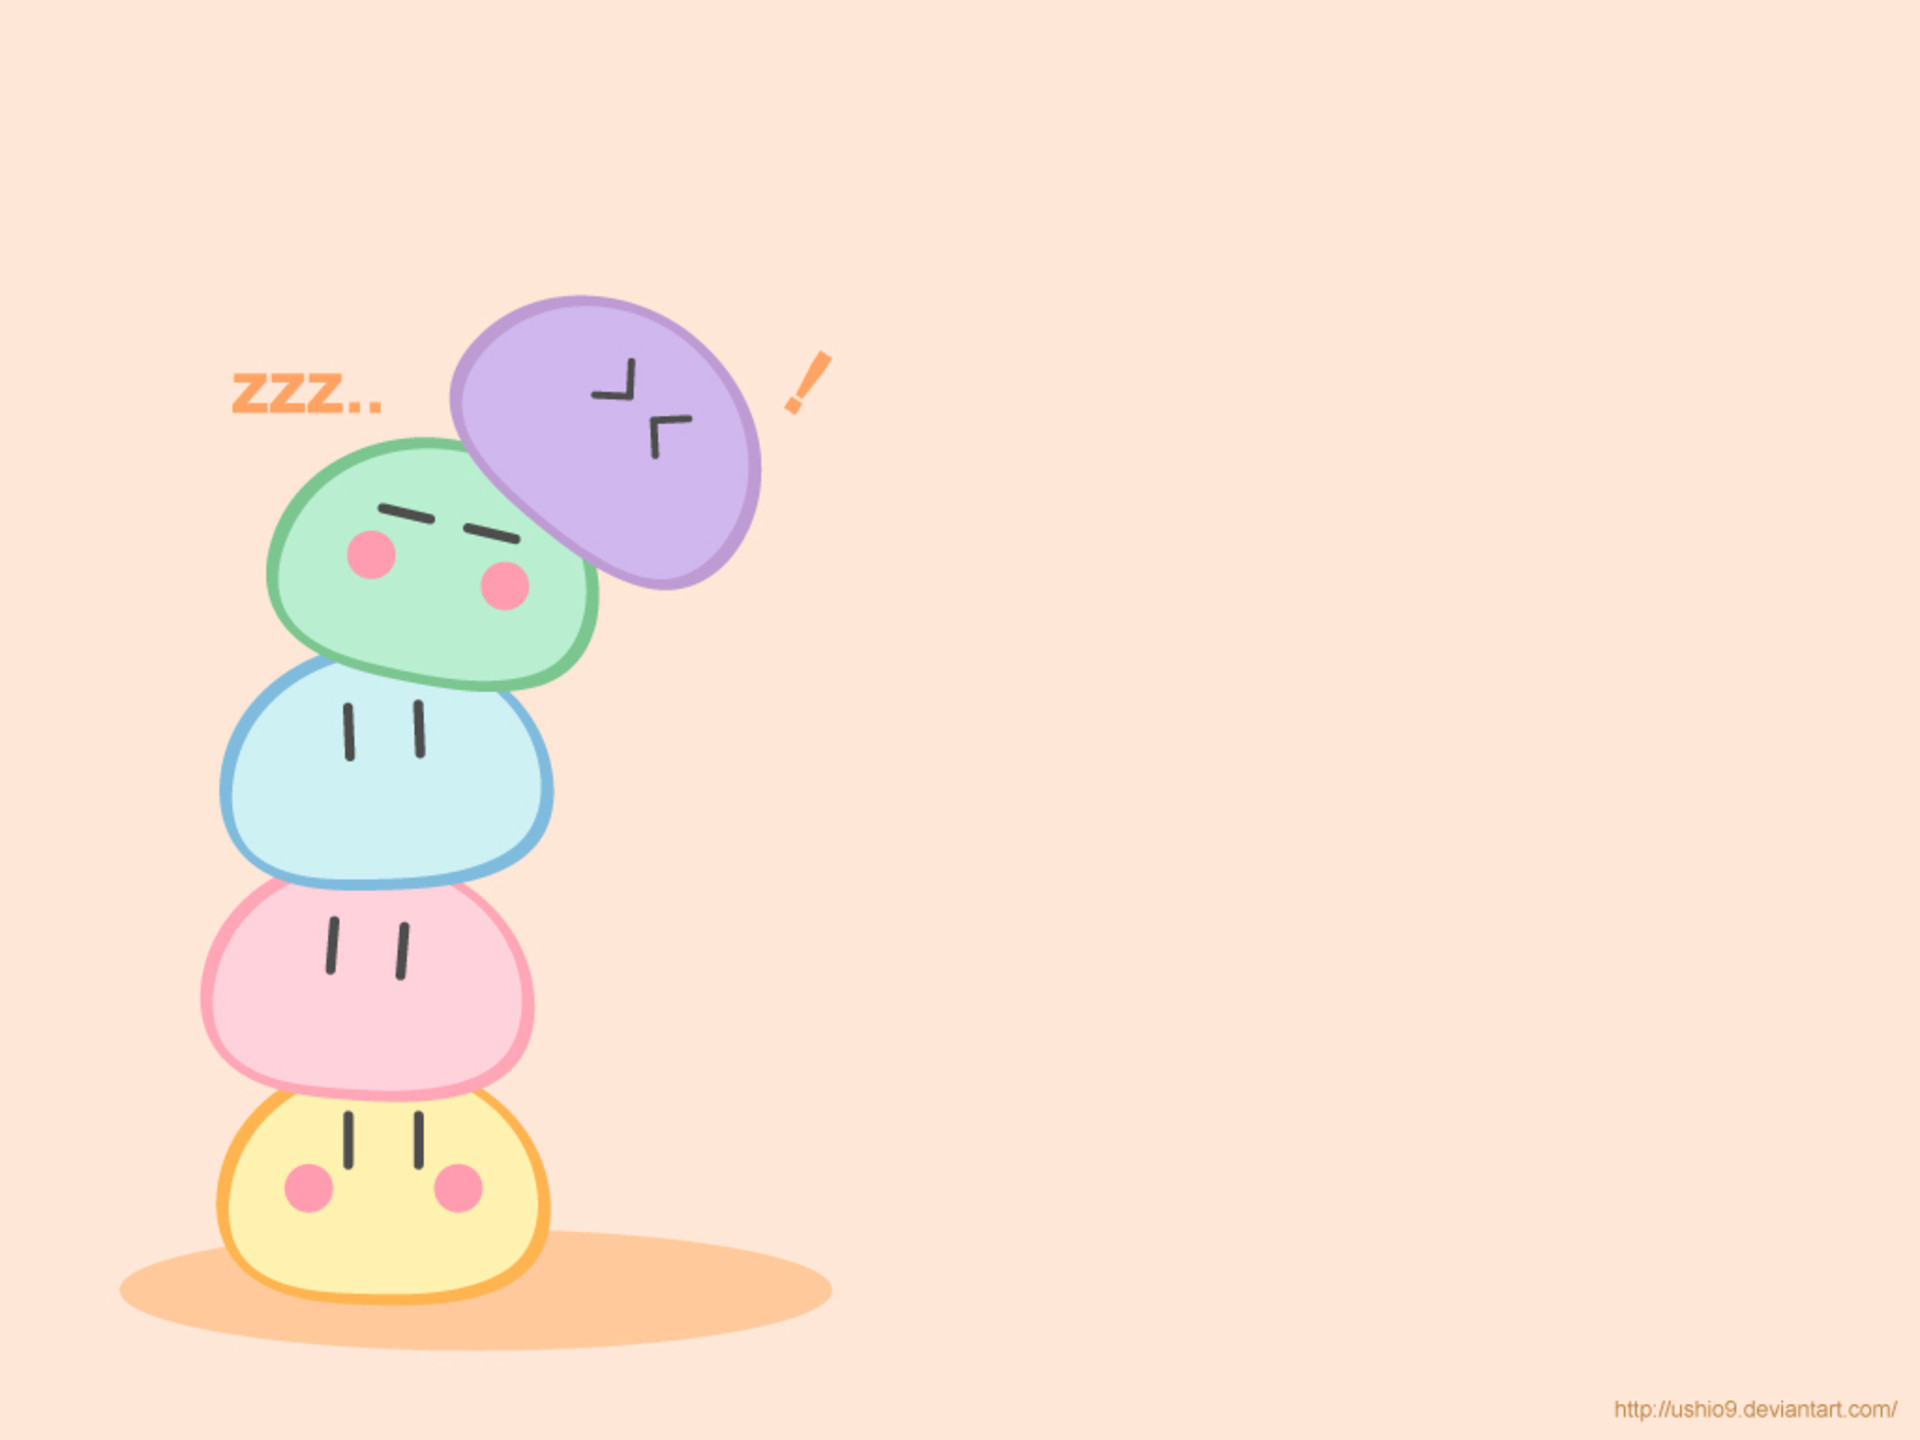 1920x1440 53 images about Dangos on We Heart It | See more about dango, clannad and  anime